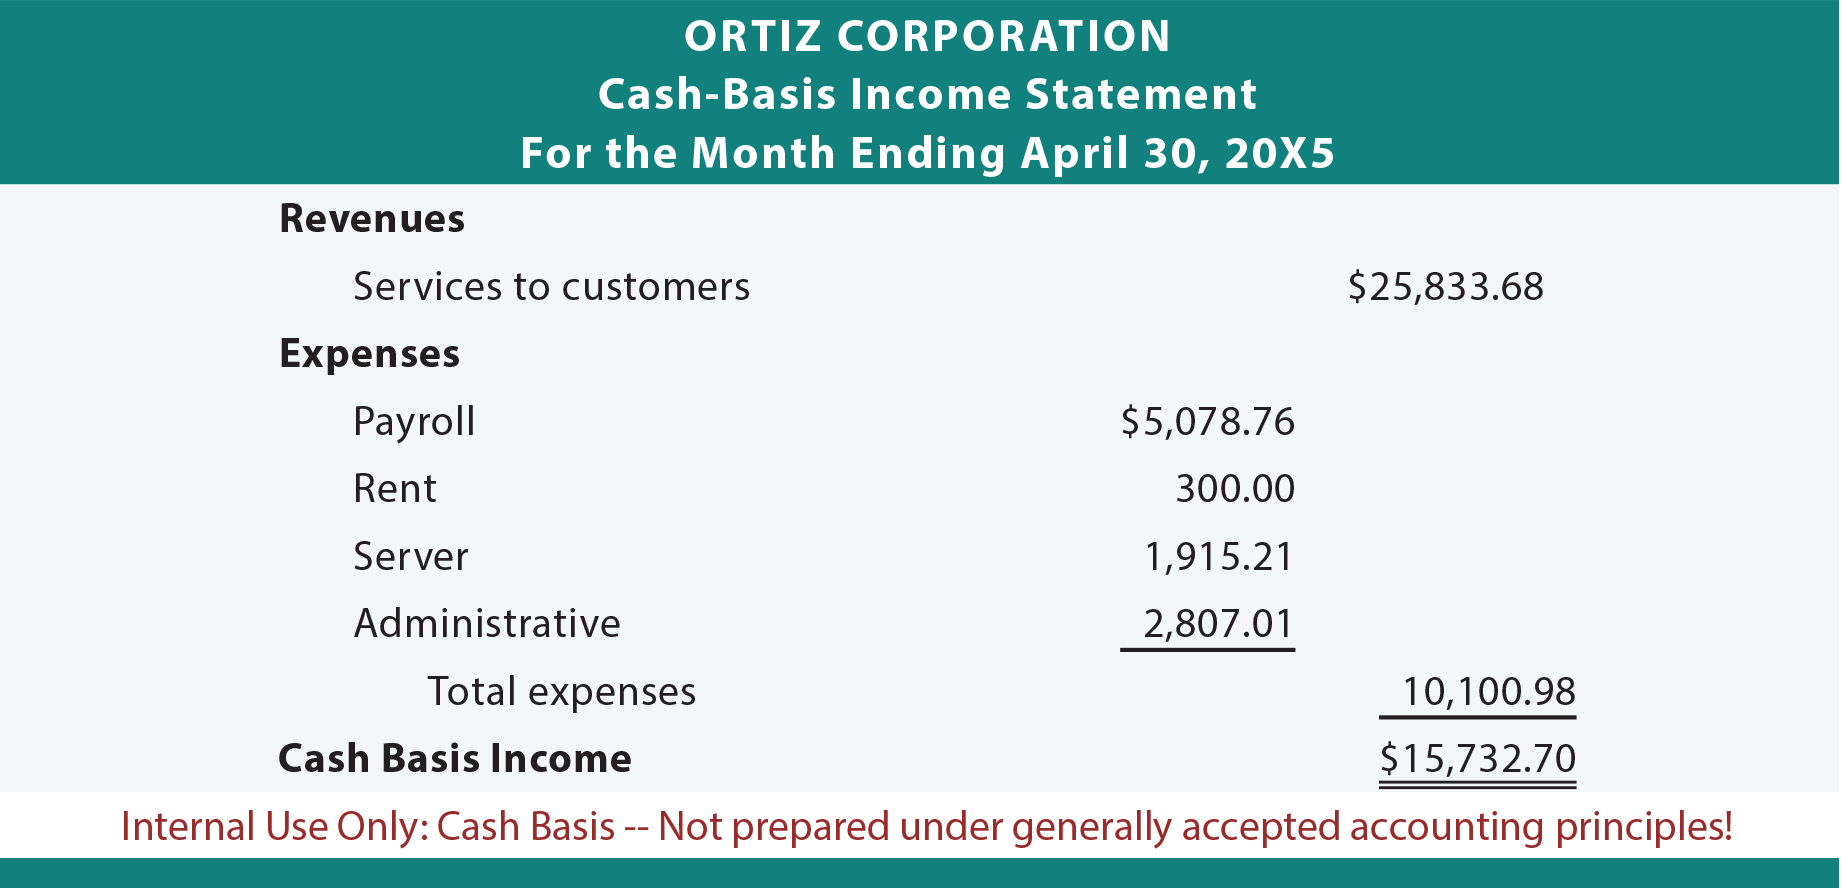 Ortiz Corporation cash basis income statement